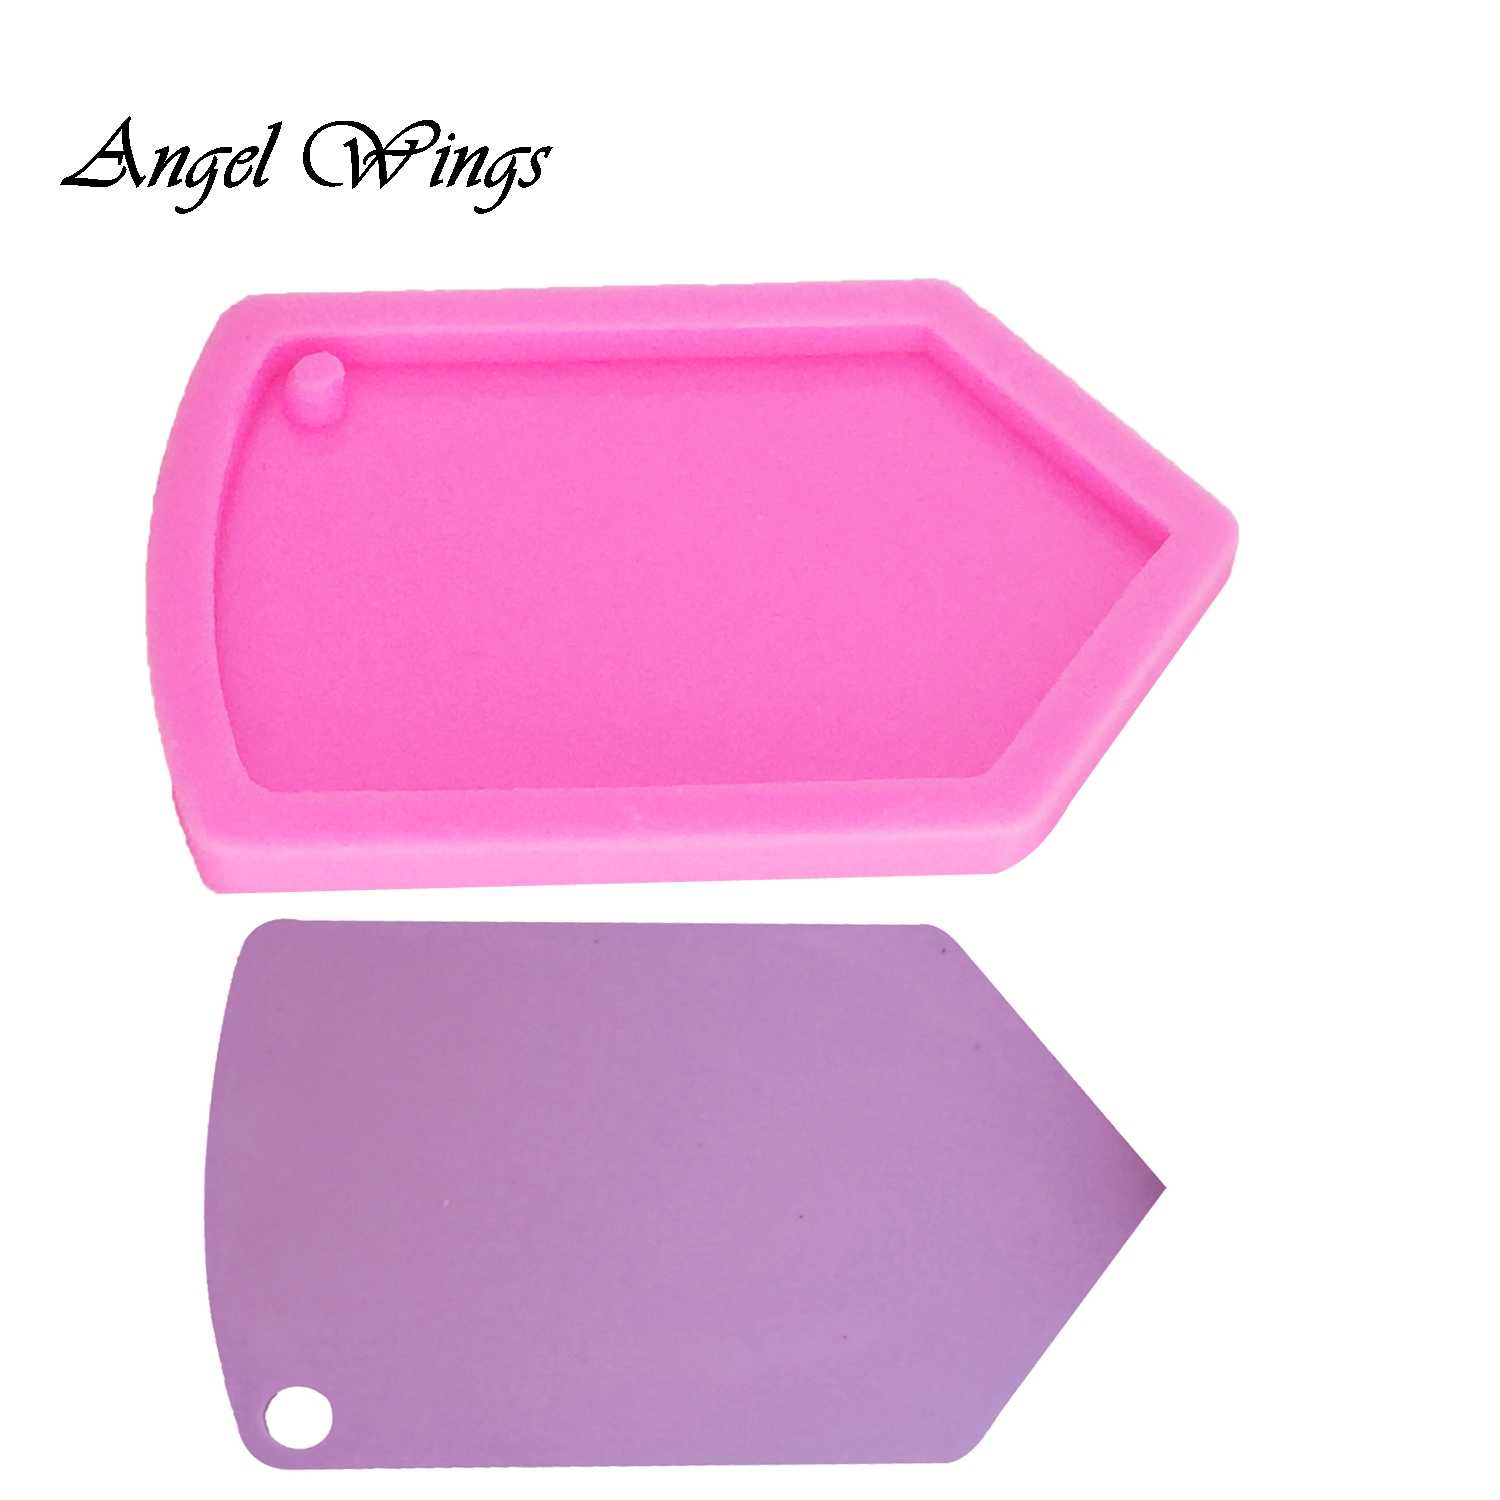 Shiny Glossy Pencil Shape Silicone Molds Making Keychain Polymer Clay Mold Necklace Epoxy Resin Jewellery Silicone Mold Resin Crafting Molds for Keychains Mold